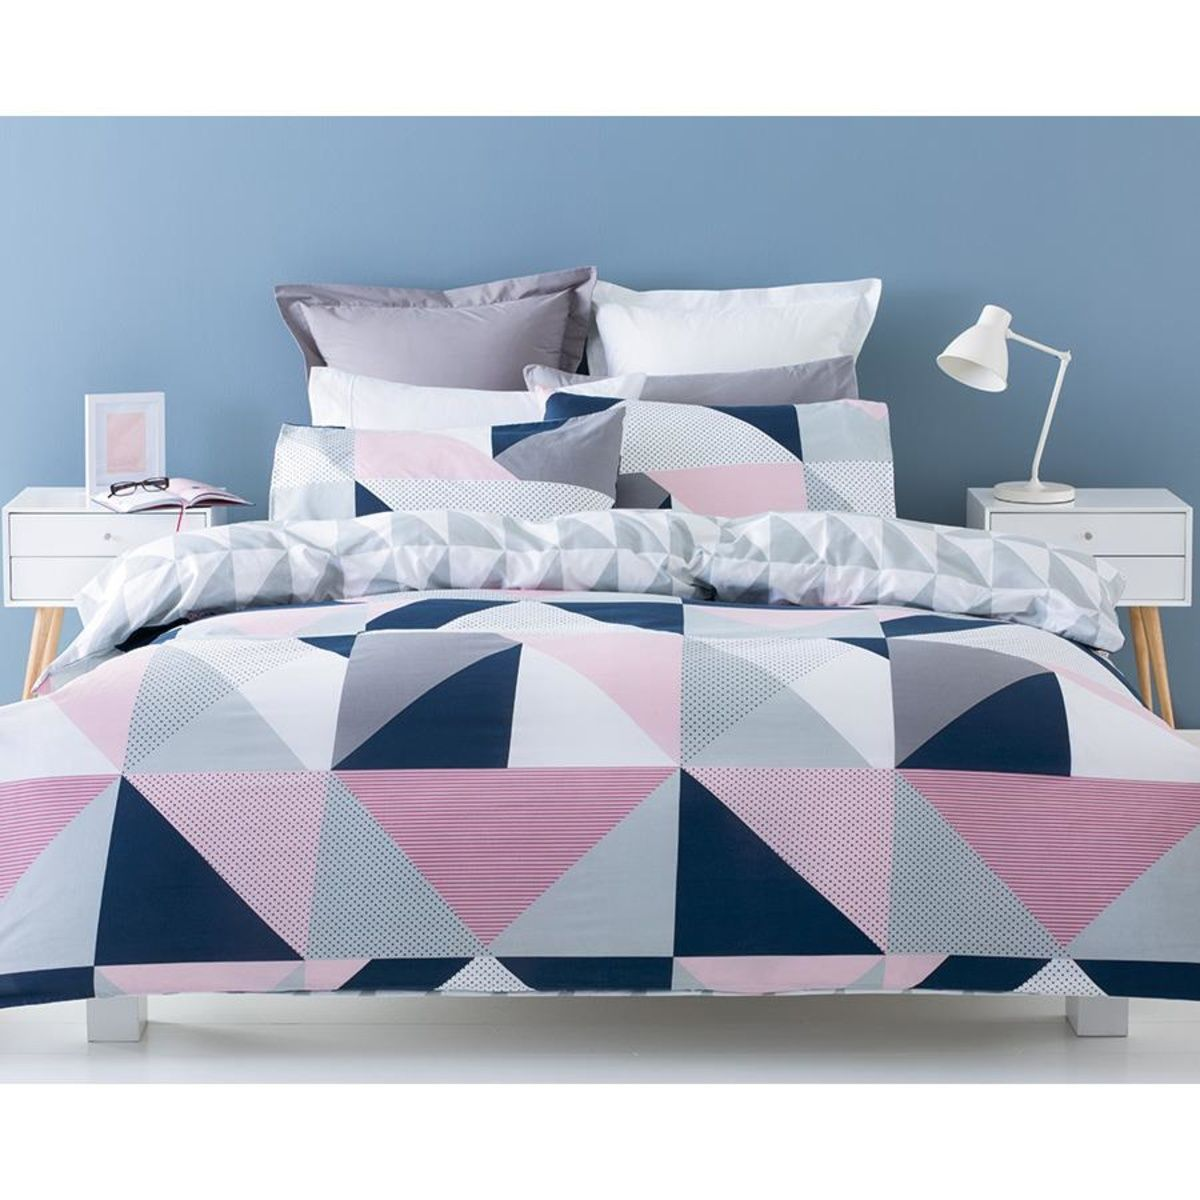 Couch Cushion Covers Kmart: Jasper Reversible Quilt Cover Set   Single Bed   Kmart   Indies    ,